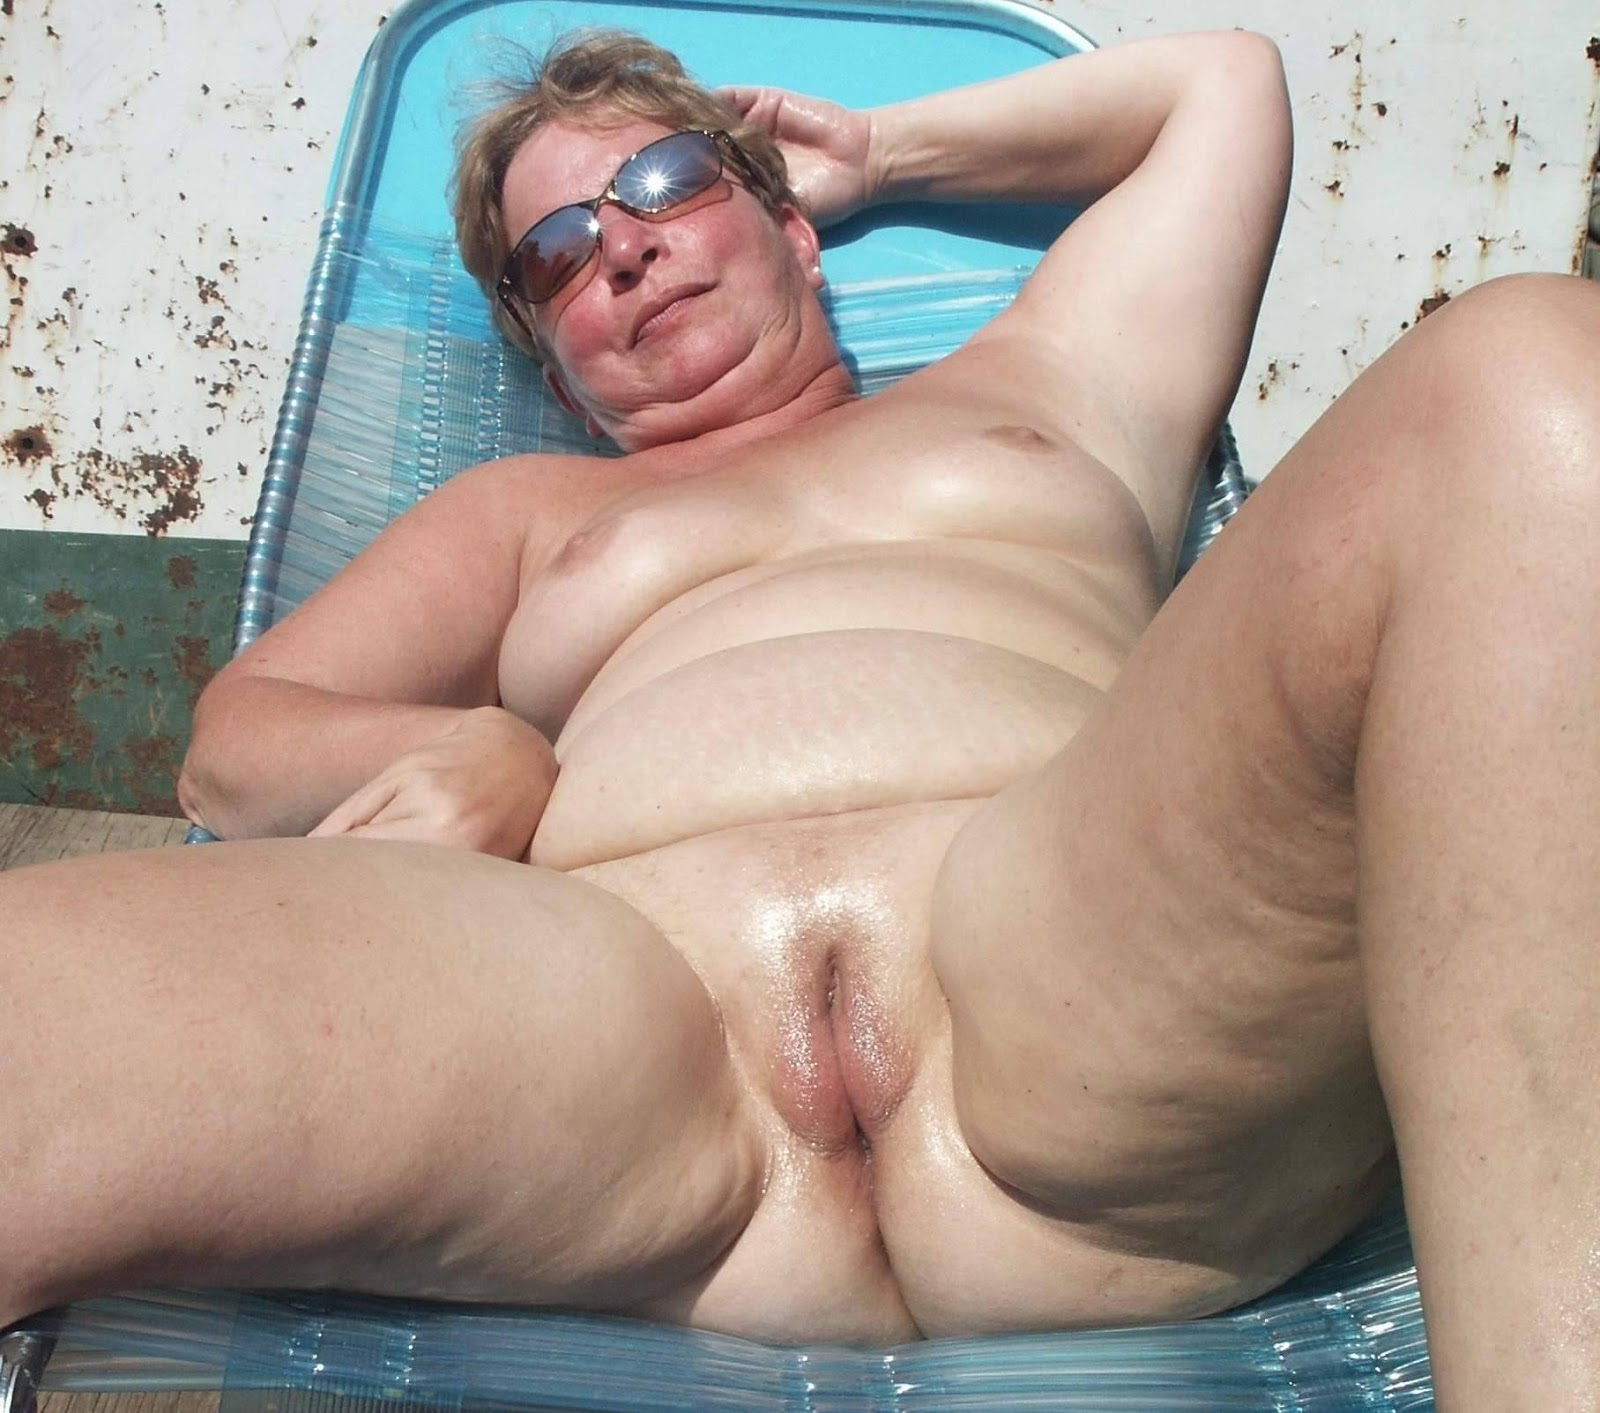 old lady ass nudes